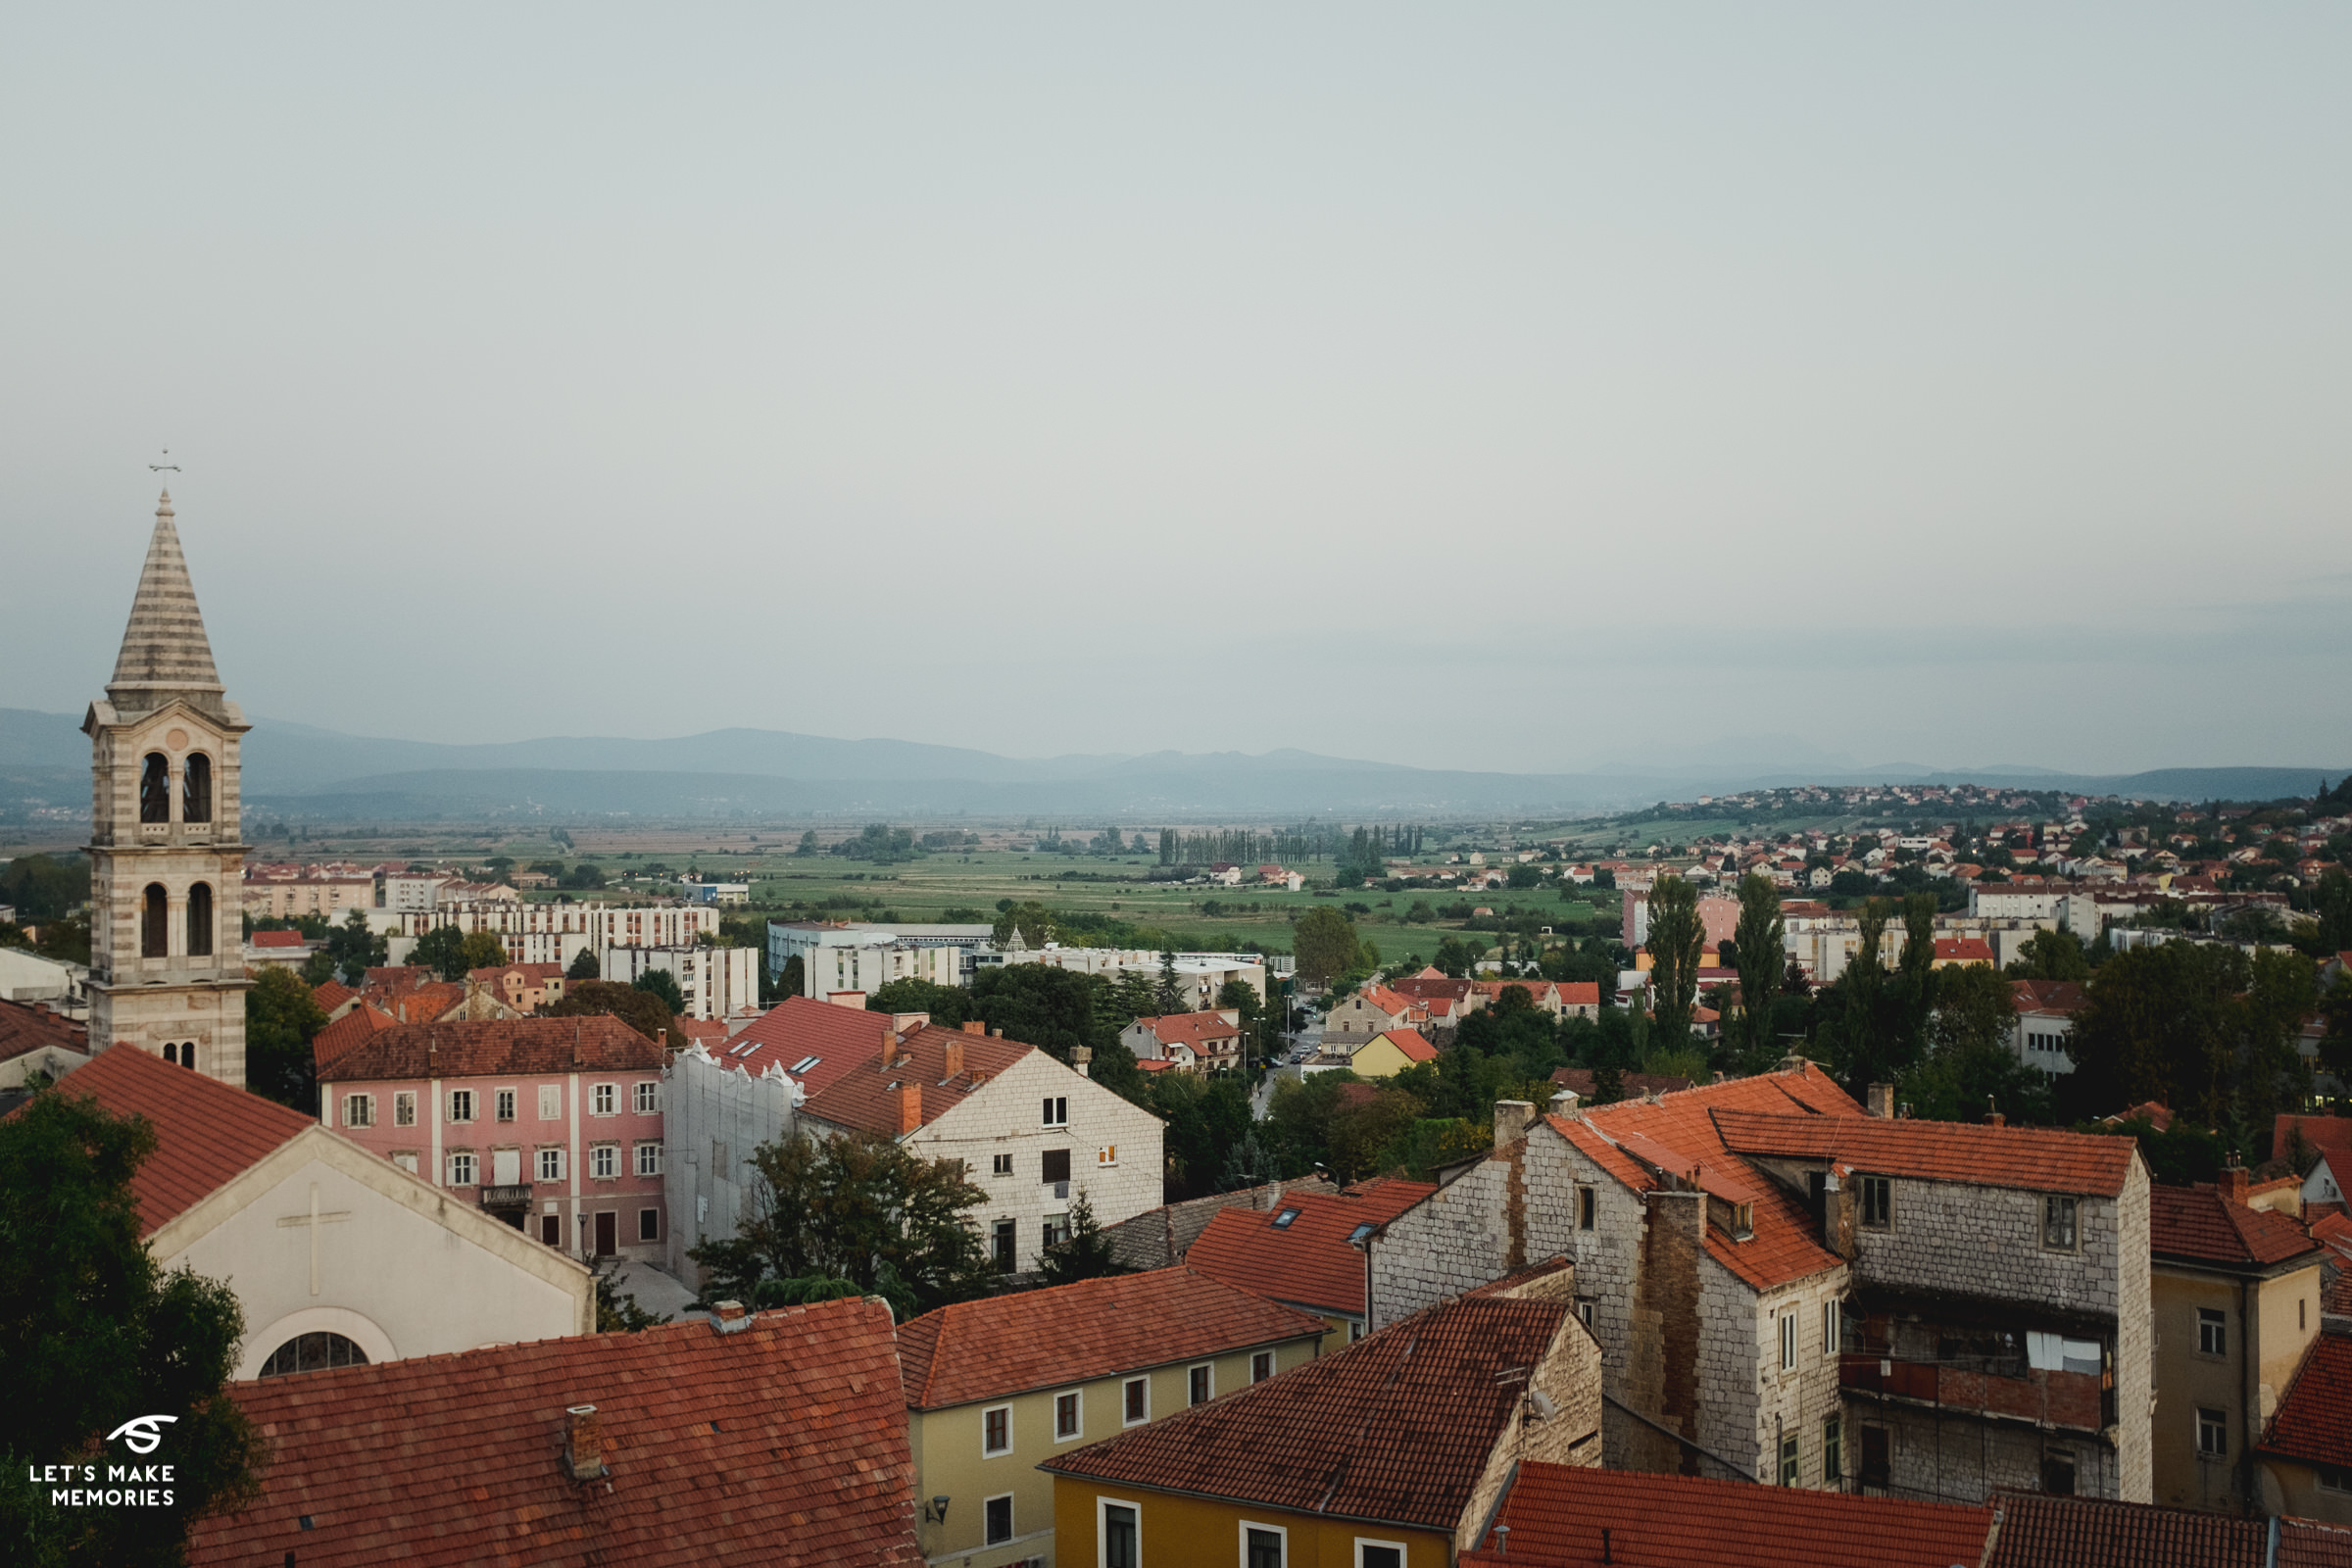 landsape of town sinj from top of kamićak fortress